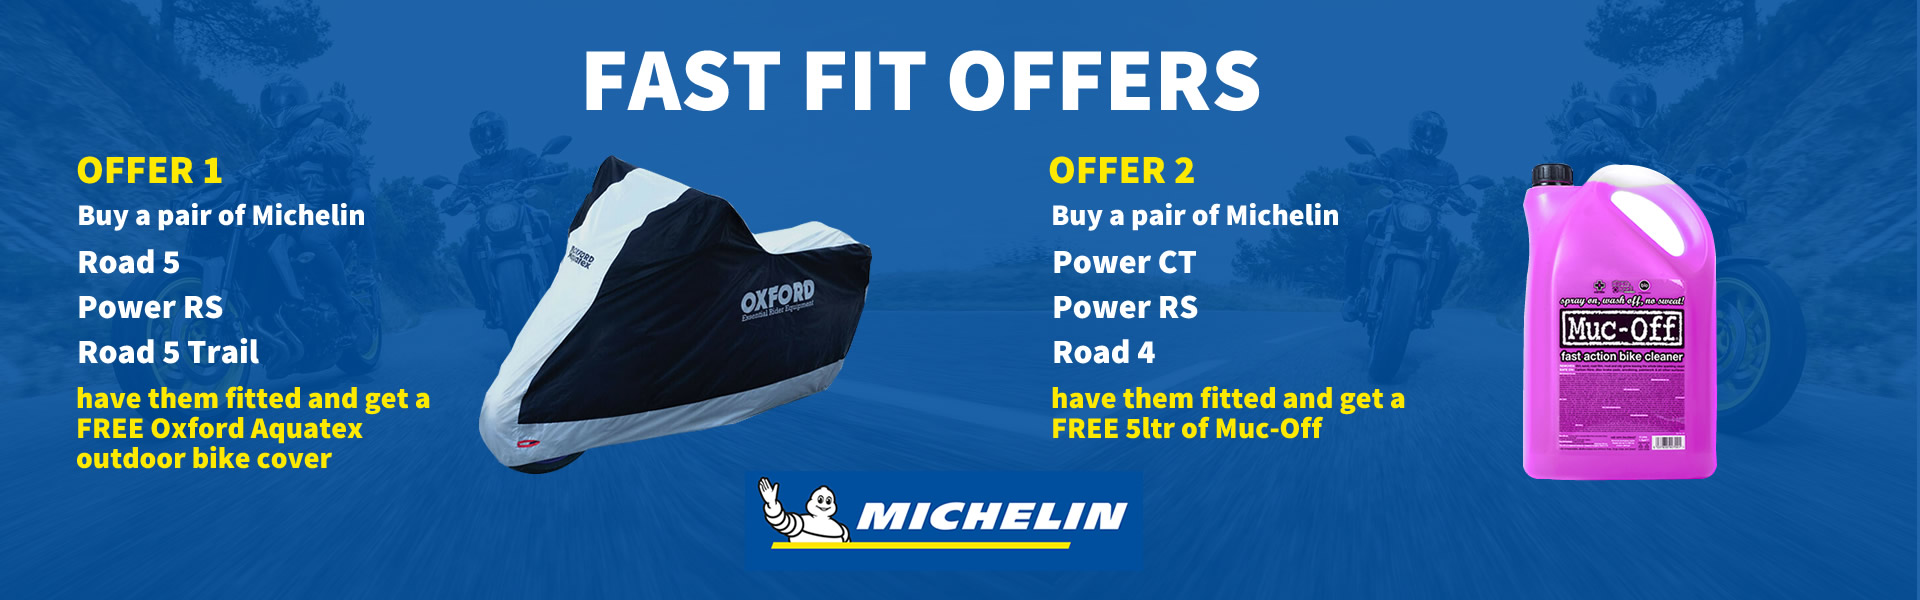 banner-michelin-promotion-2